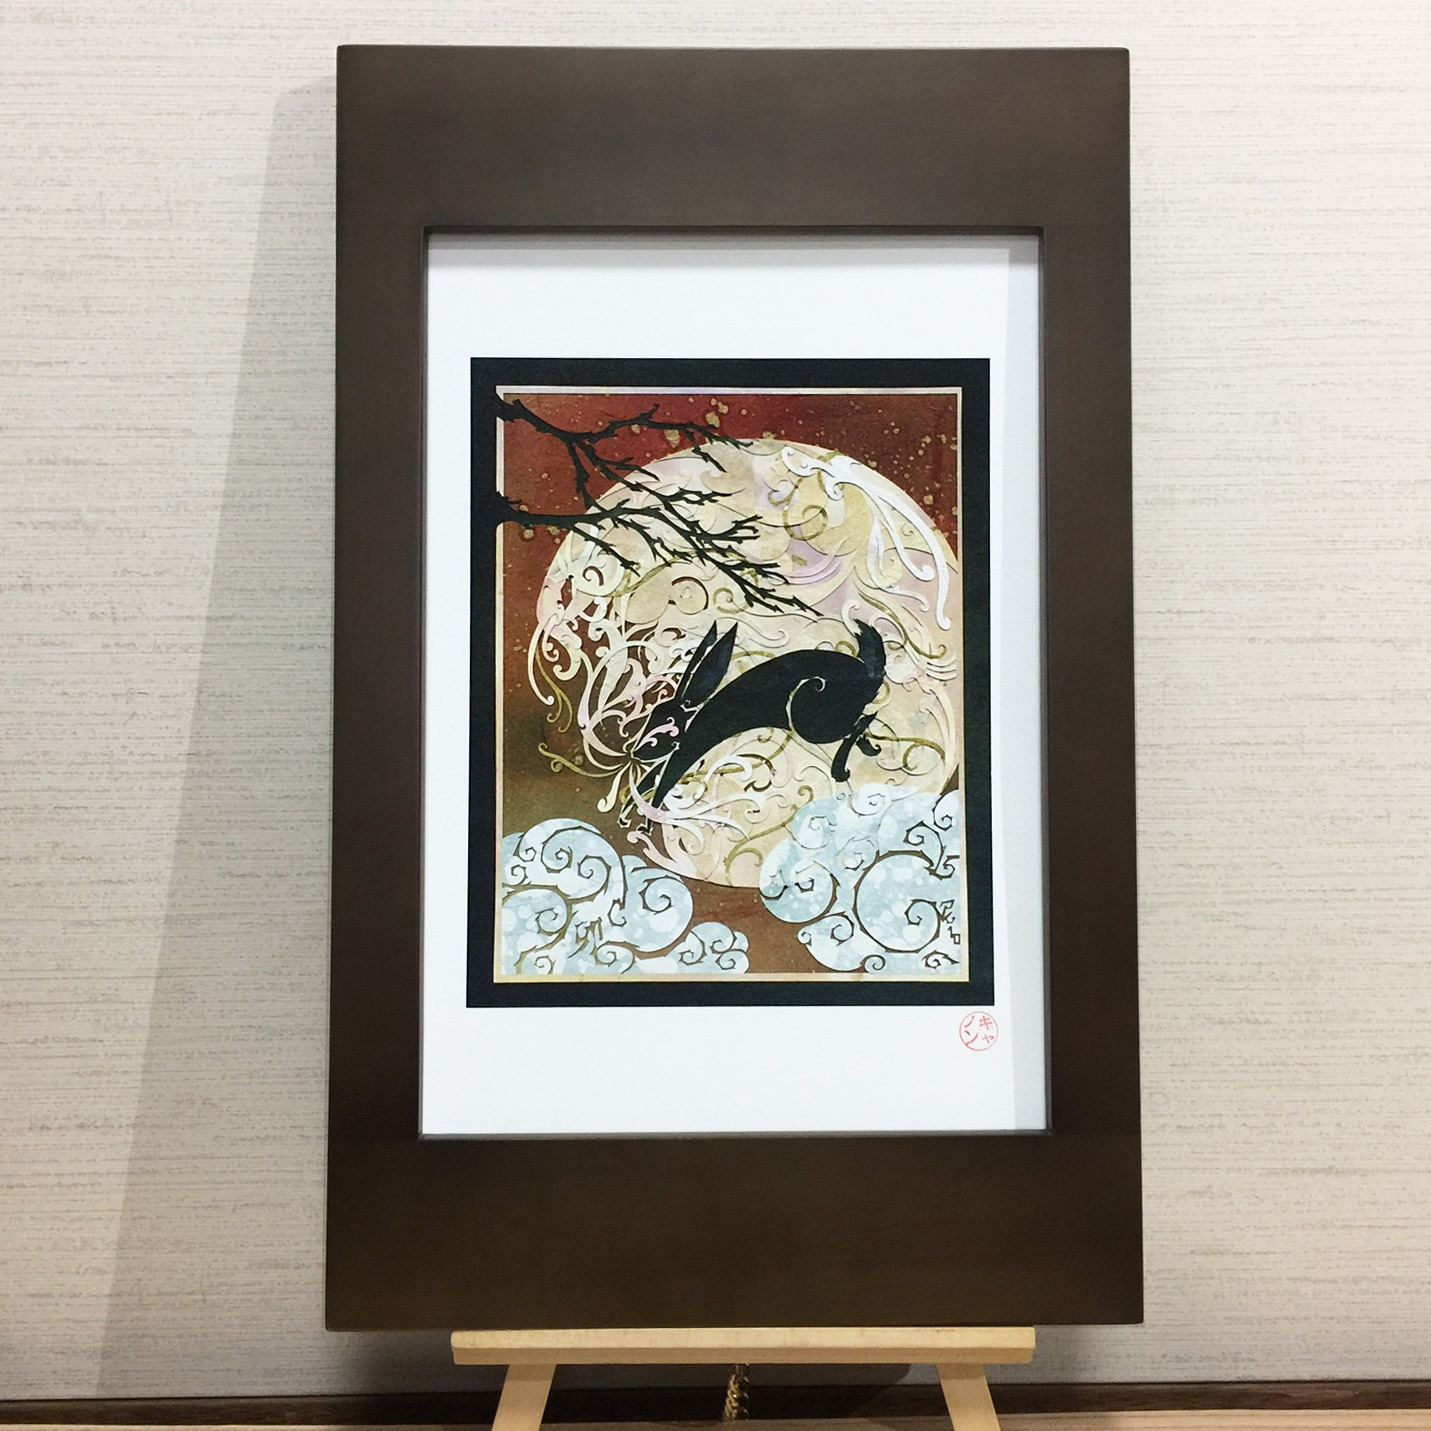 ⊛  To Breathe the Pale and Shining Moon   ⊛ open-edition giclée print